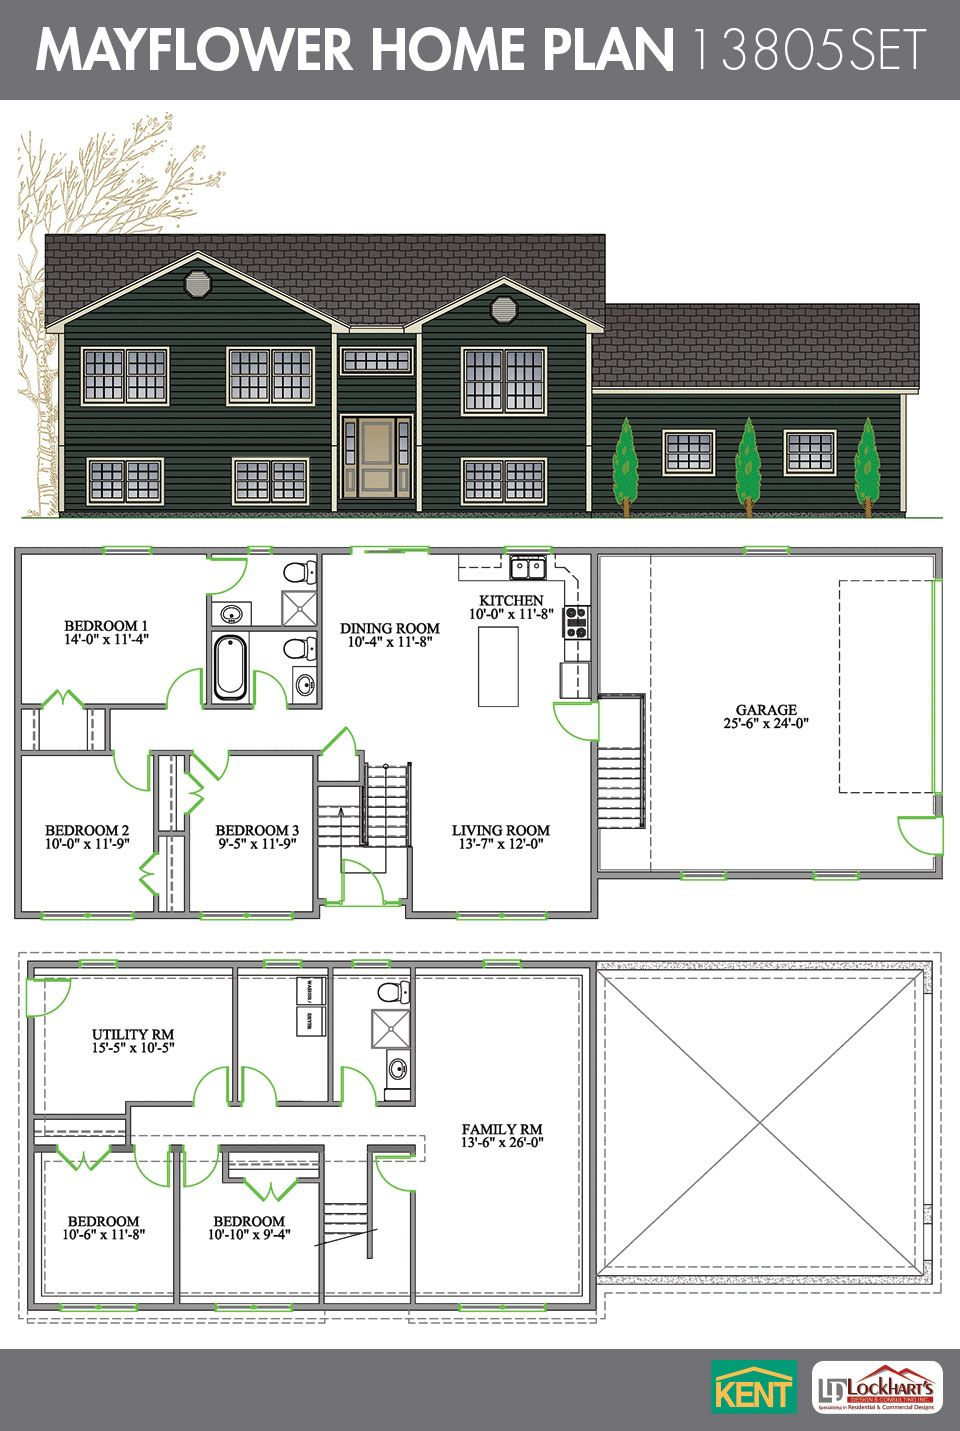 Mayflower Home Plan House Plans Floor Plans Kent Building